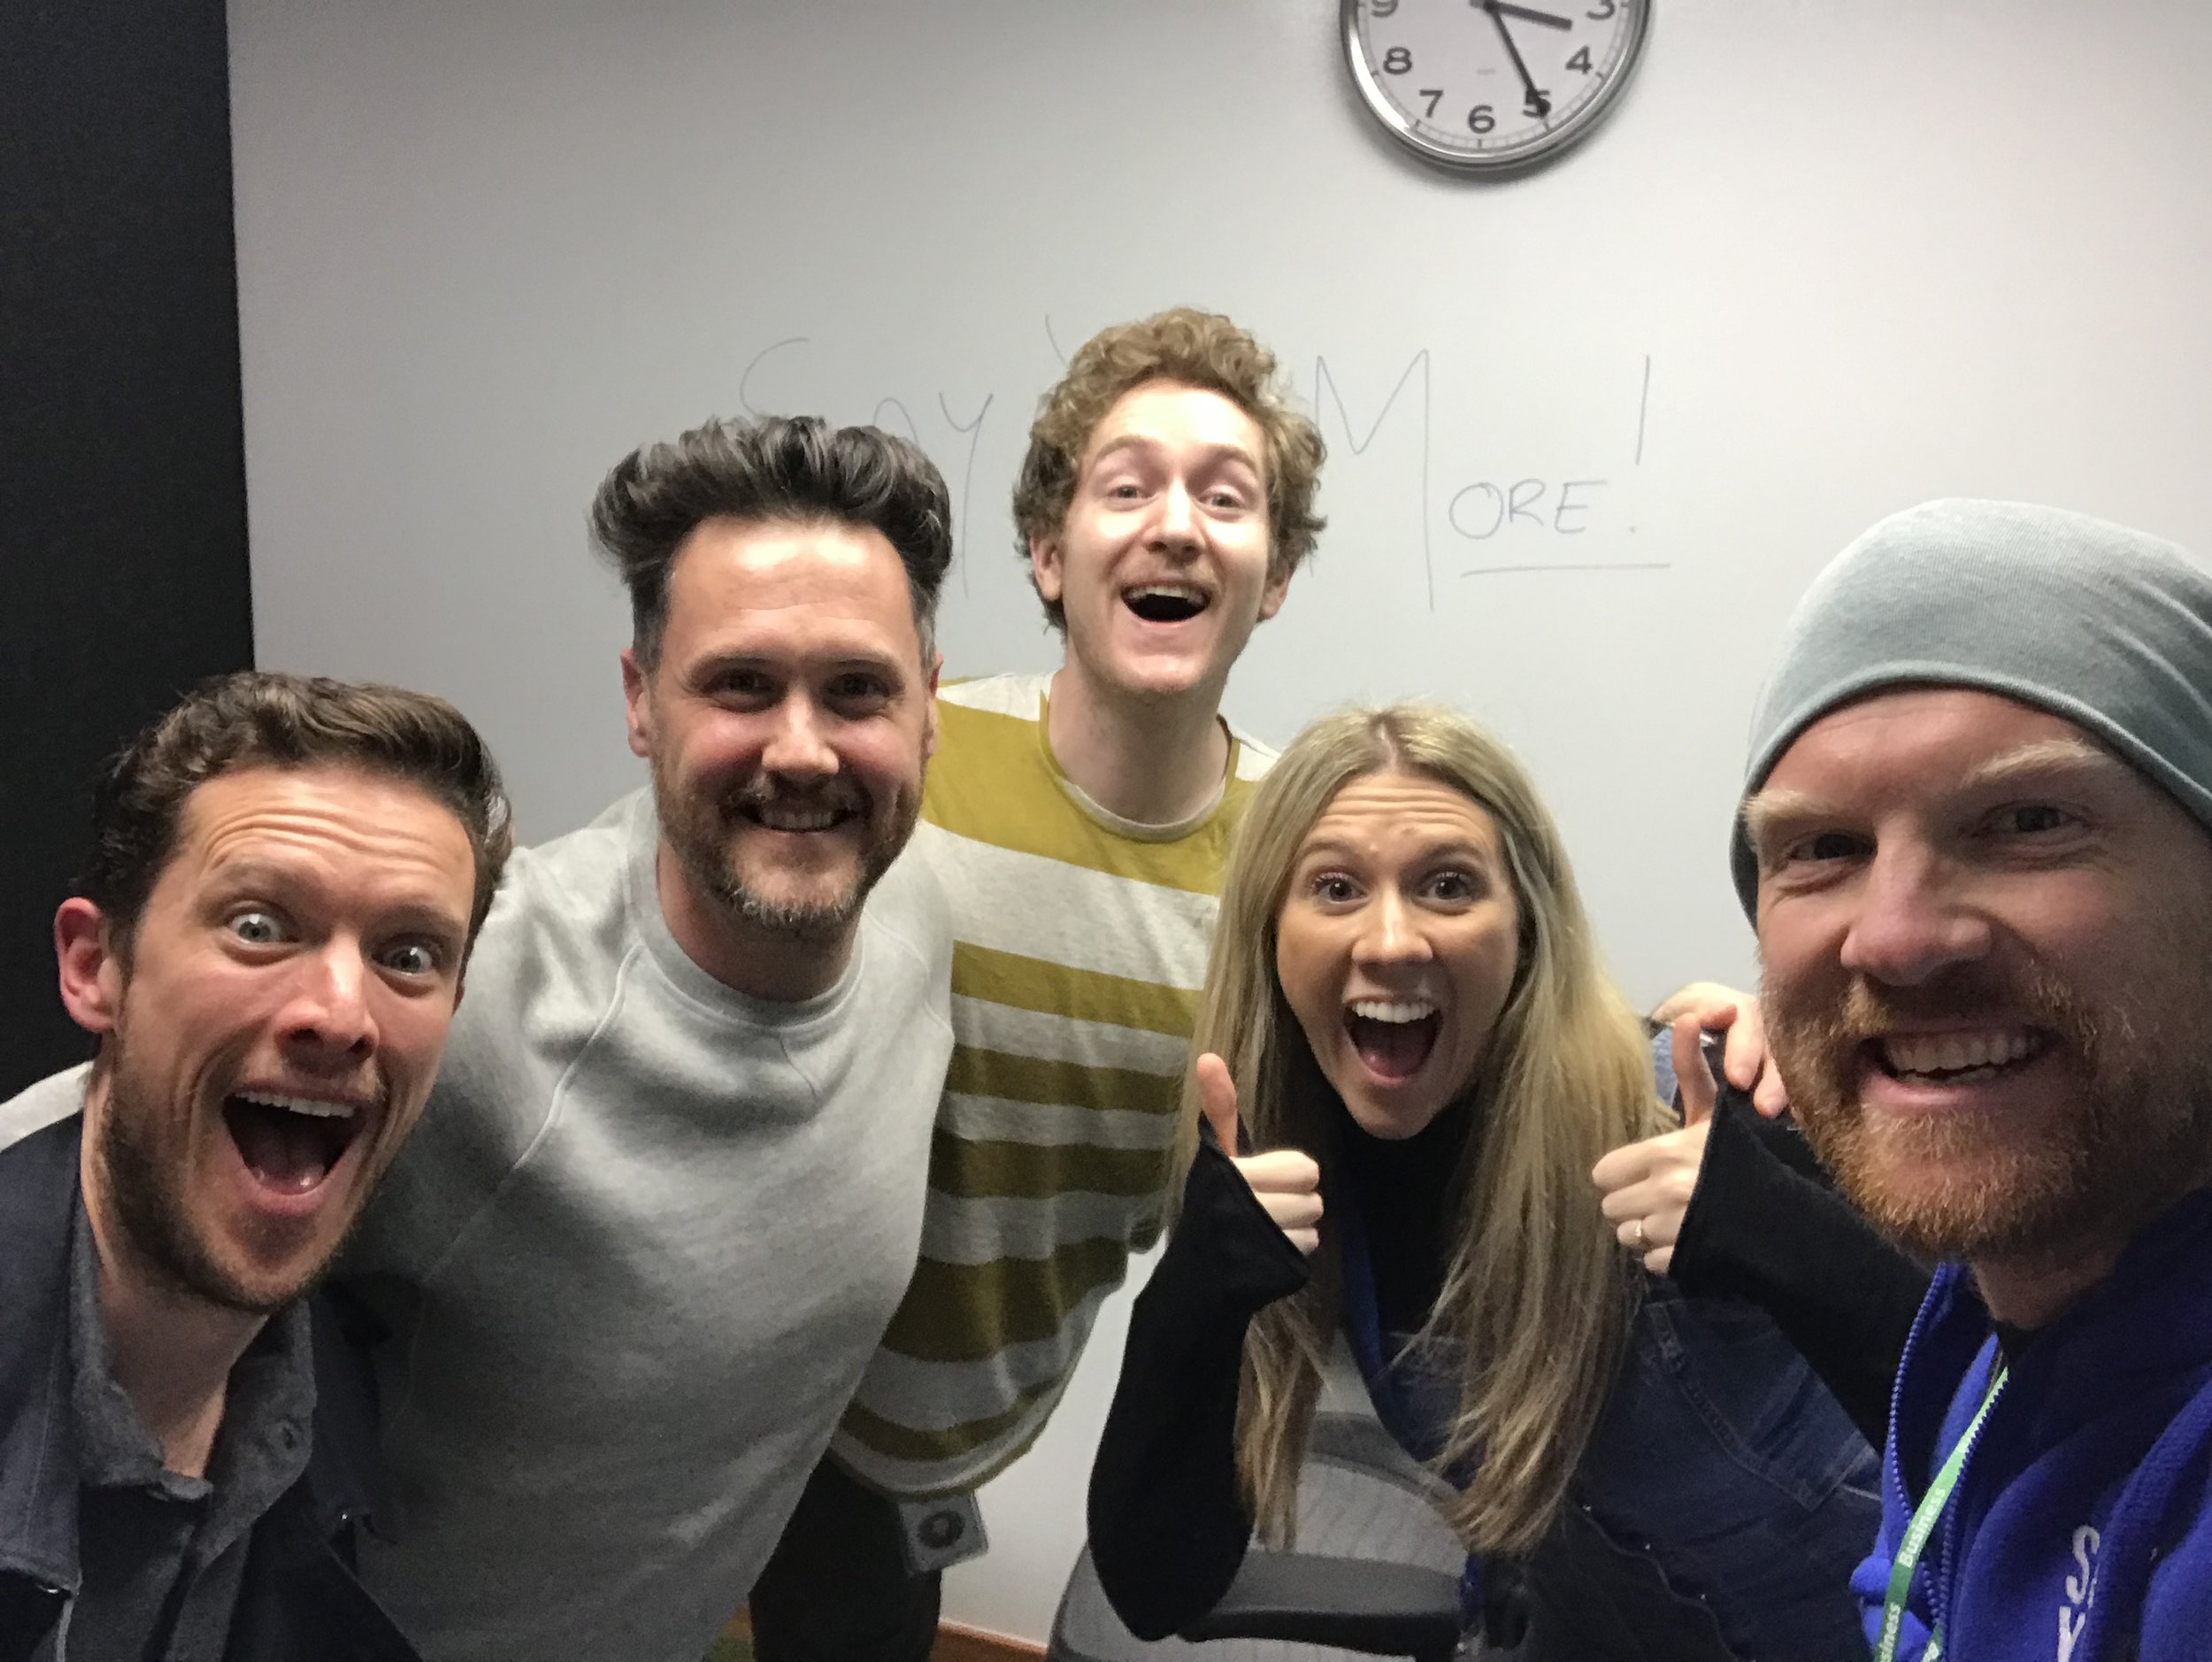 DC (right) with Phil, James, Sammy and Liv at Facebook HQ in London, after a planning session for the Wake Up Wild campaign. Sammy spent the whole session drawing on the walls!